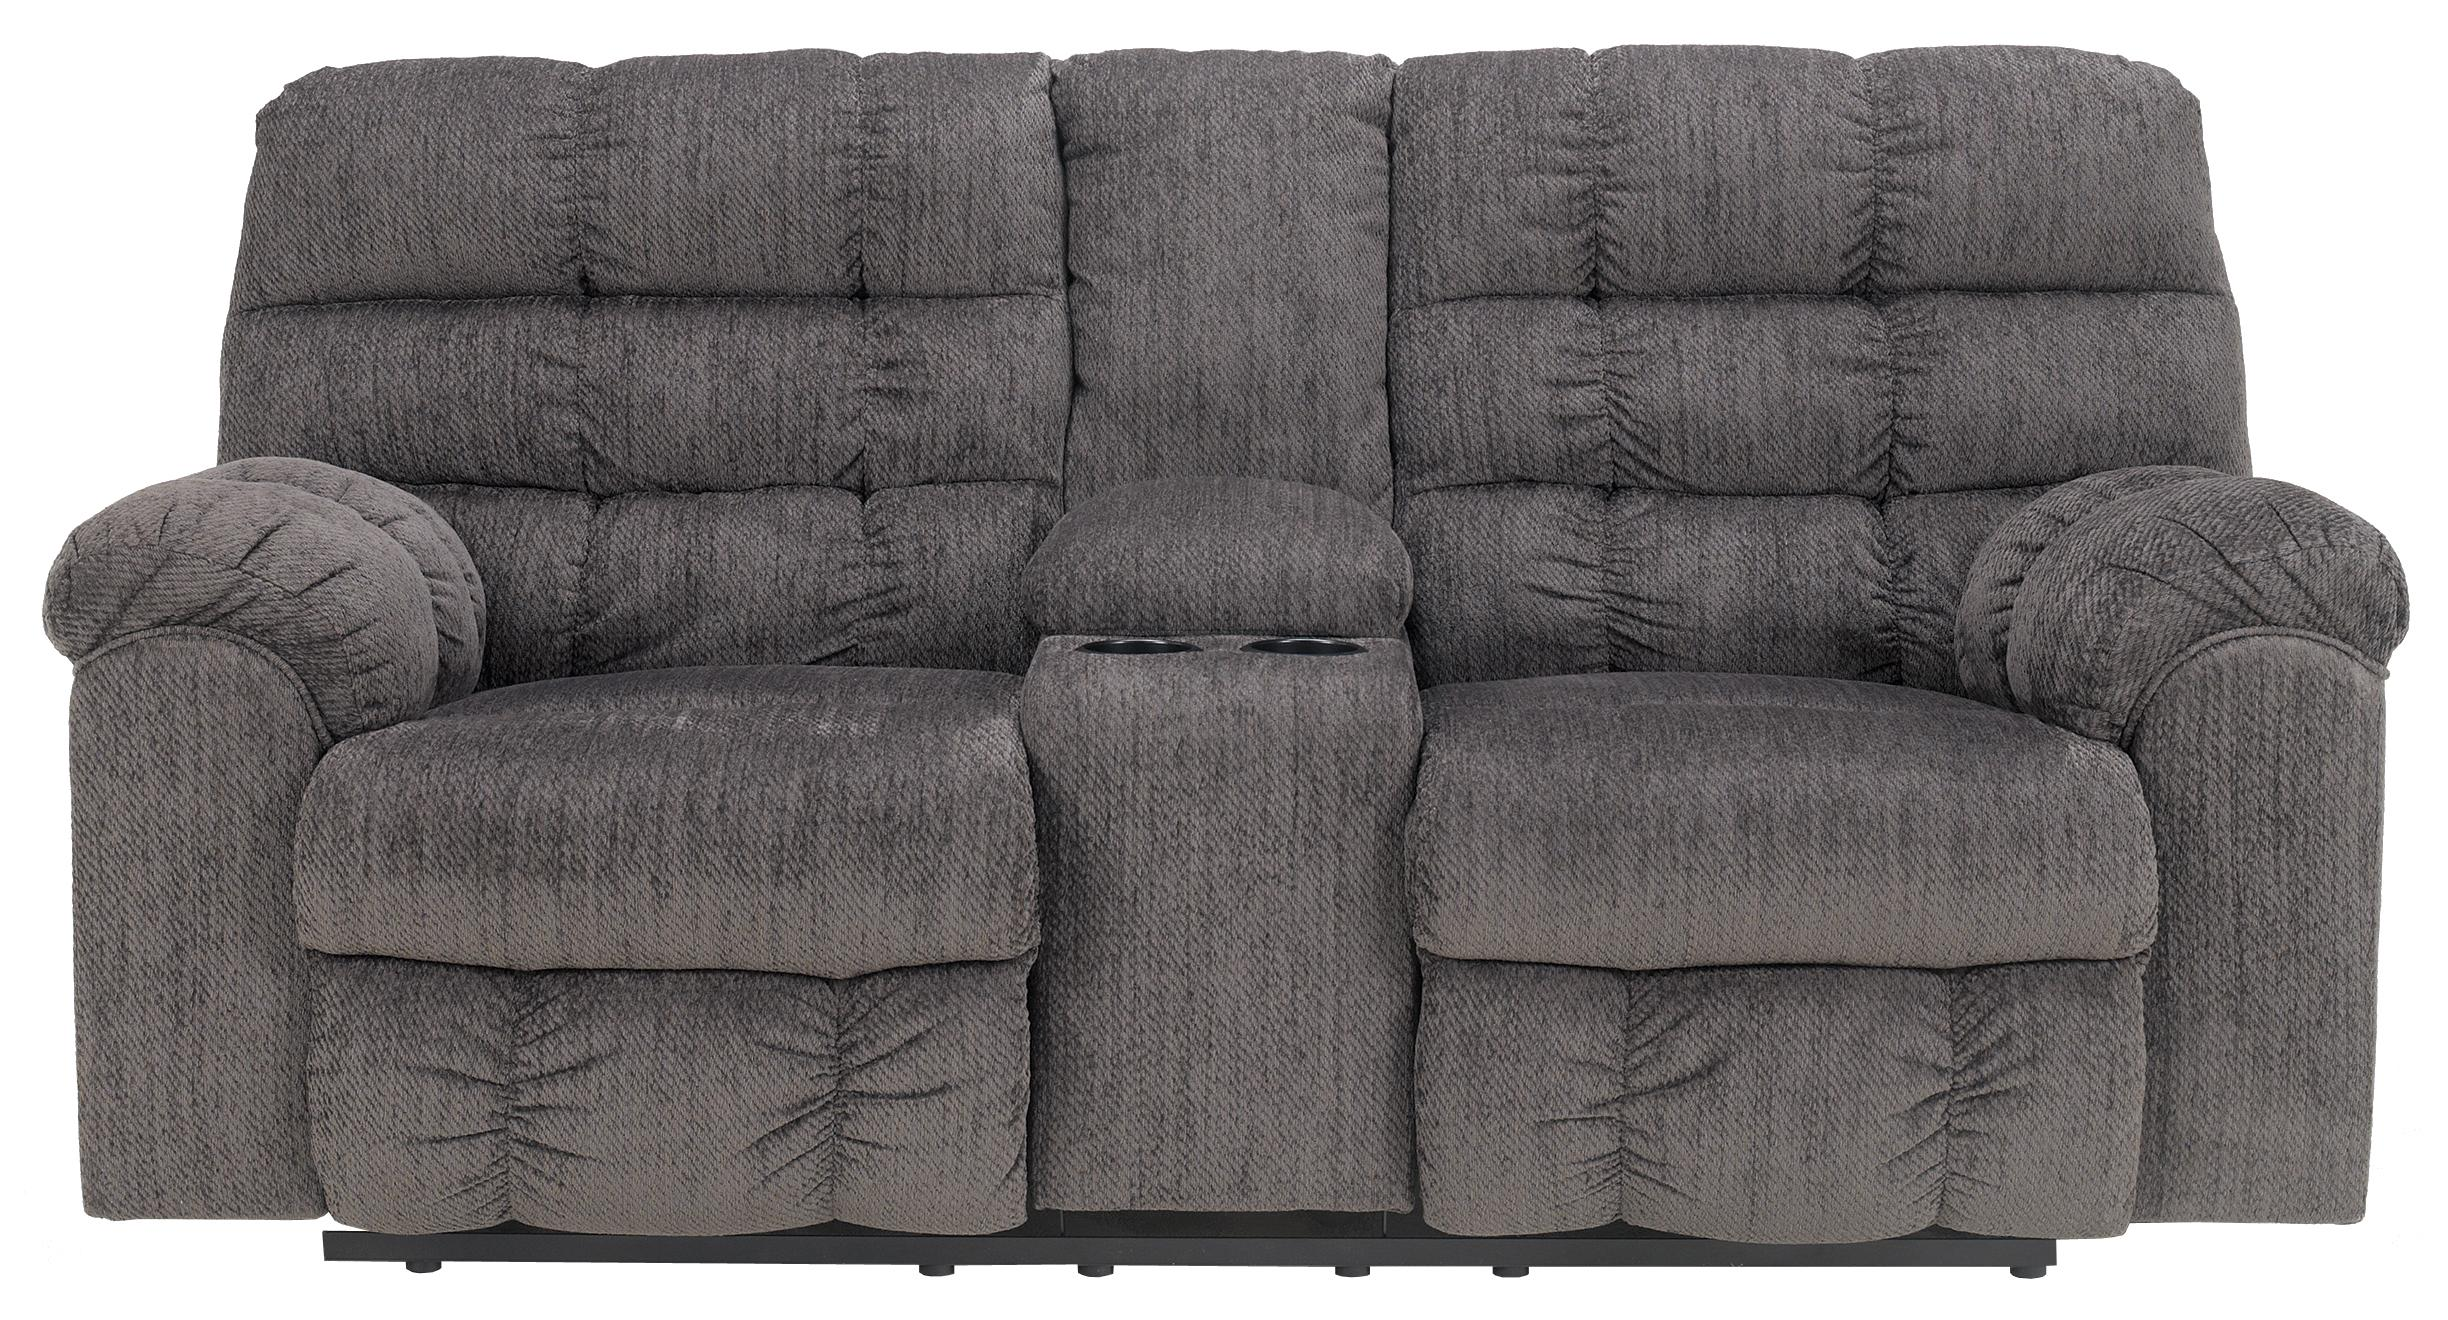 Double Reclining Loveseat with Console